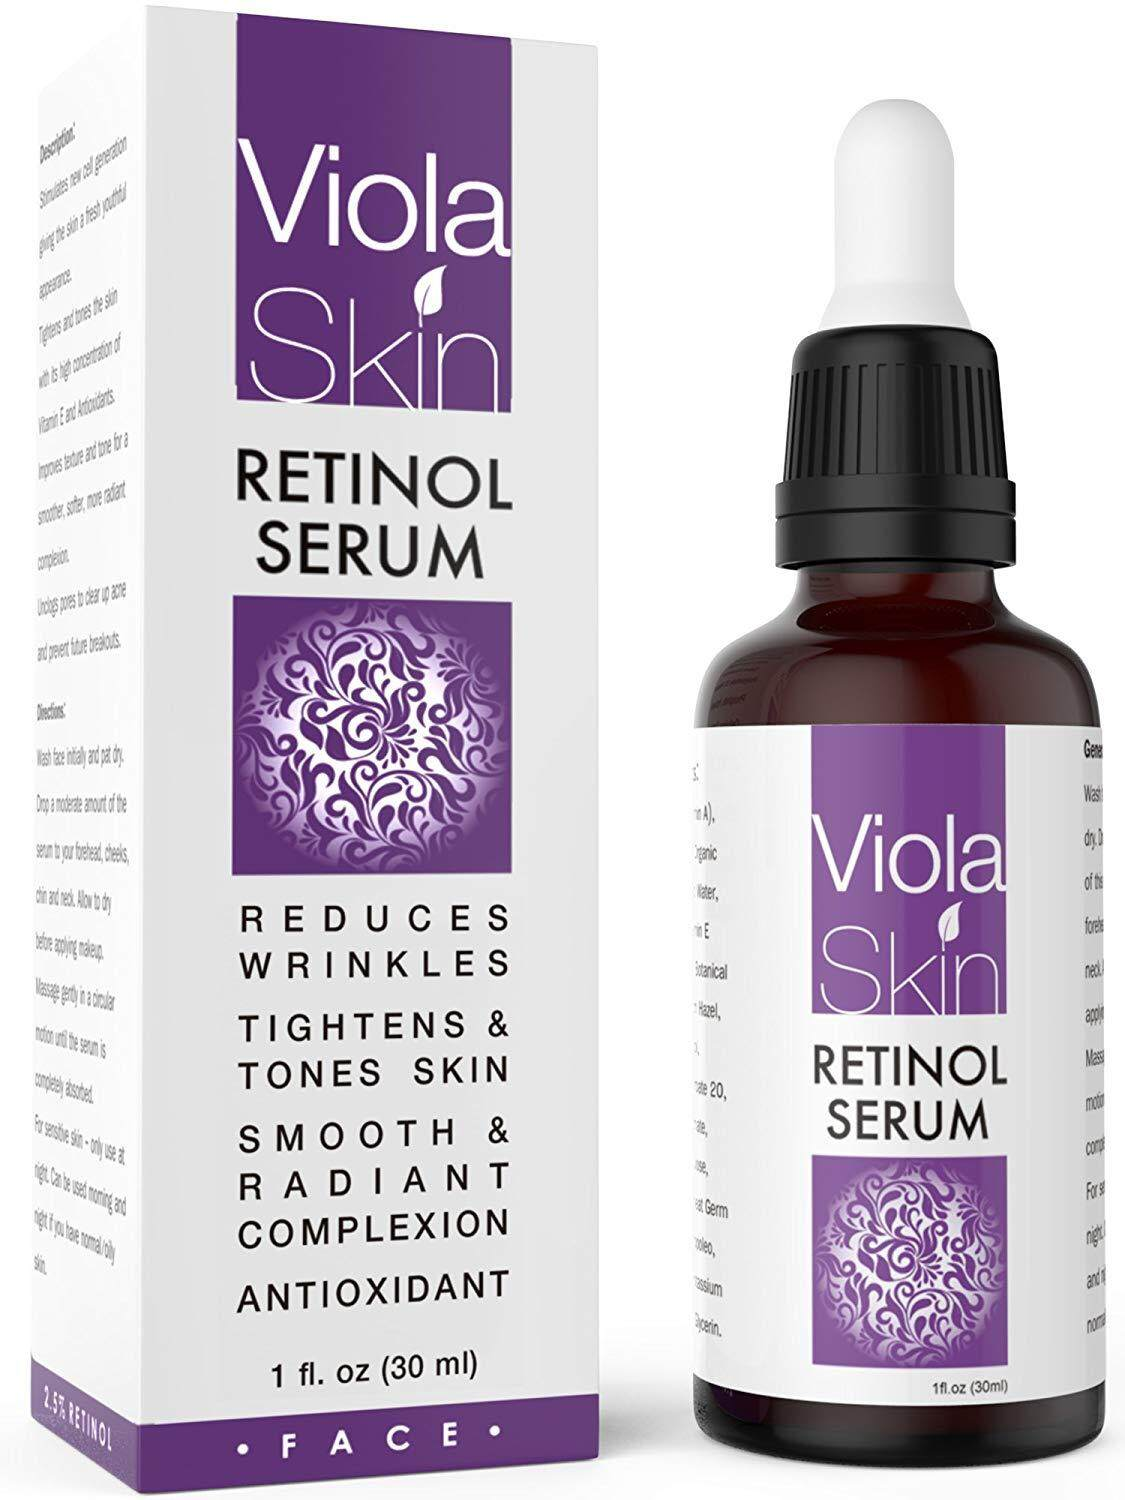 ViolaSkin PREMIUM Retinol Face Serum with Hyaluronic Acid & Vitamin E, Anti Aging Retinol Serum for Wrinkles, Fine Lines & Sensitive Skin, Hydrate & Brighten your look!